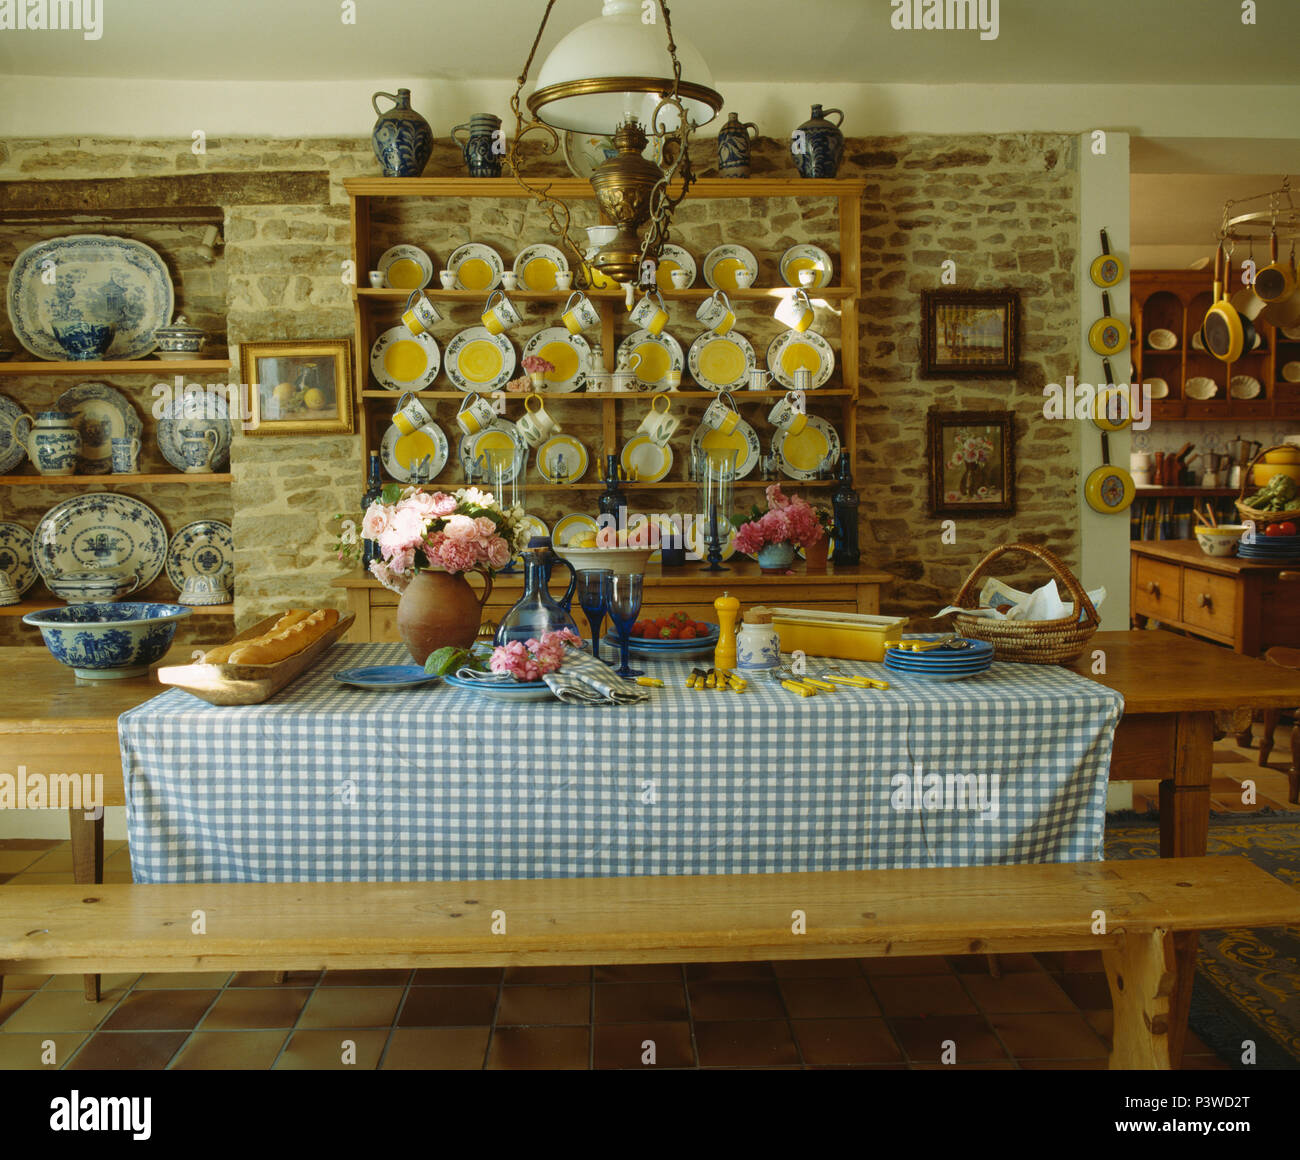 Rustic Wooden Bench At Table With Blue Checked Cloth In French